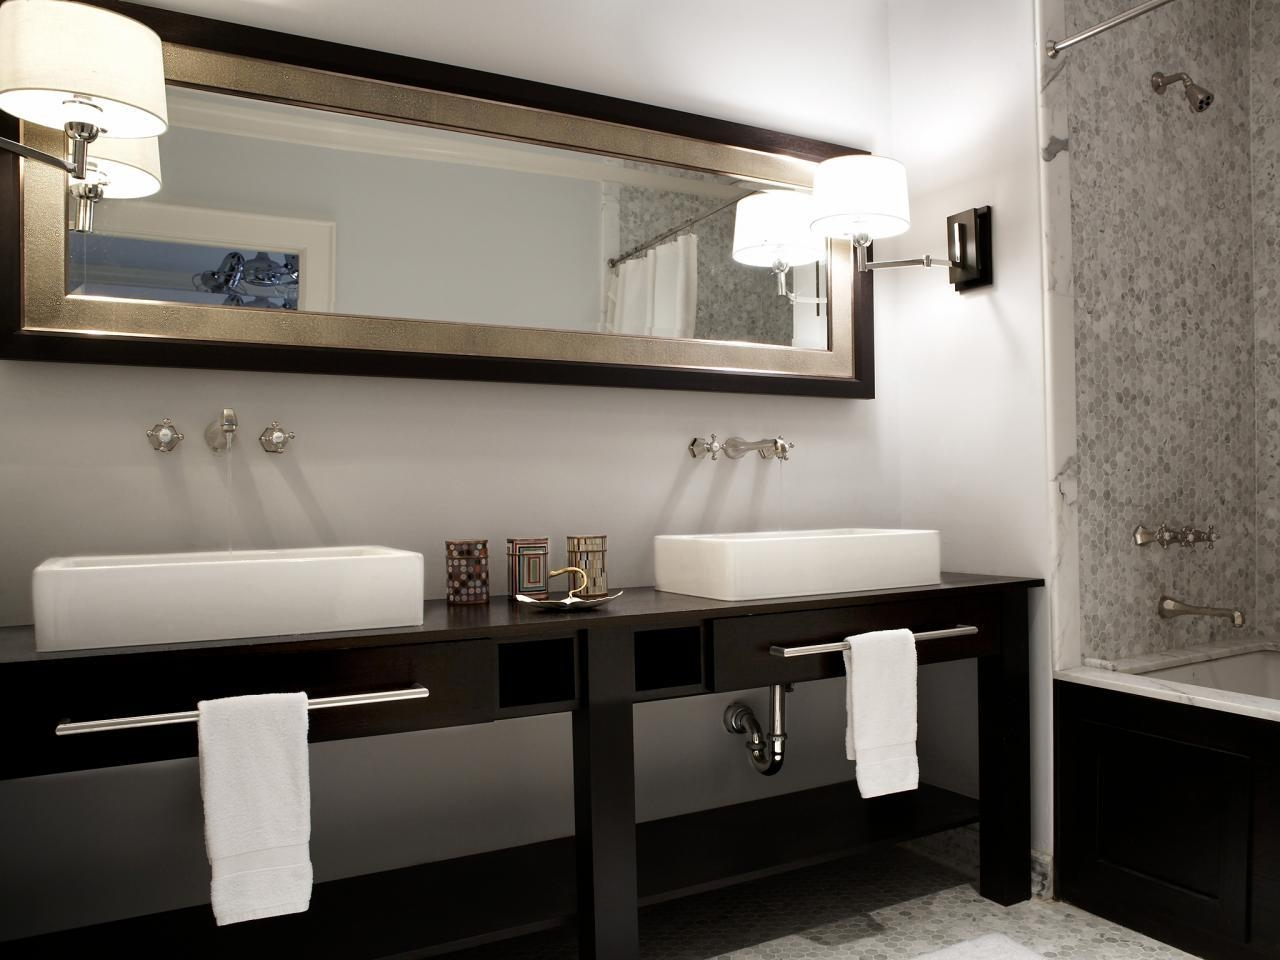 Bathroom Vanity Mirrors | Hgtv Inside Bathroom Vanities Mirrors (Image 8 of 20)